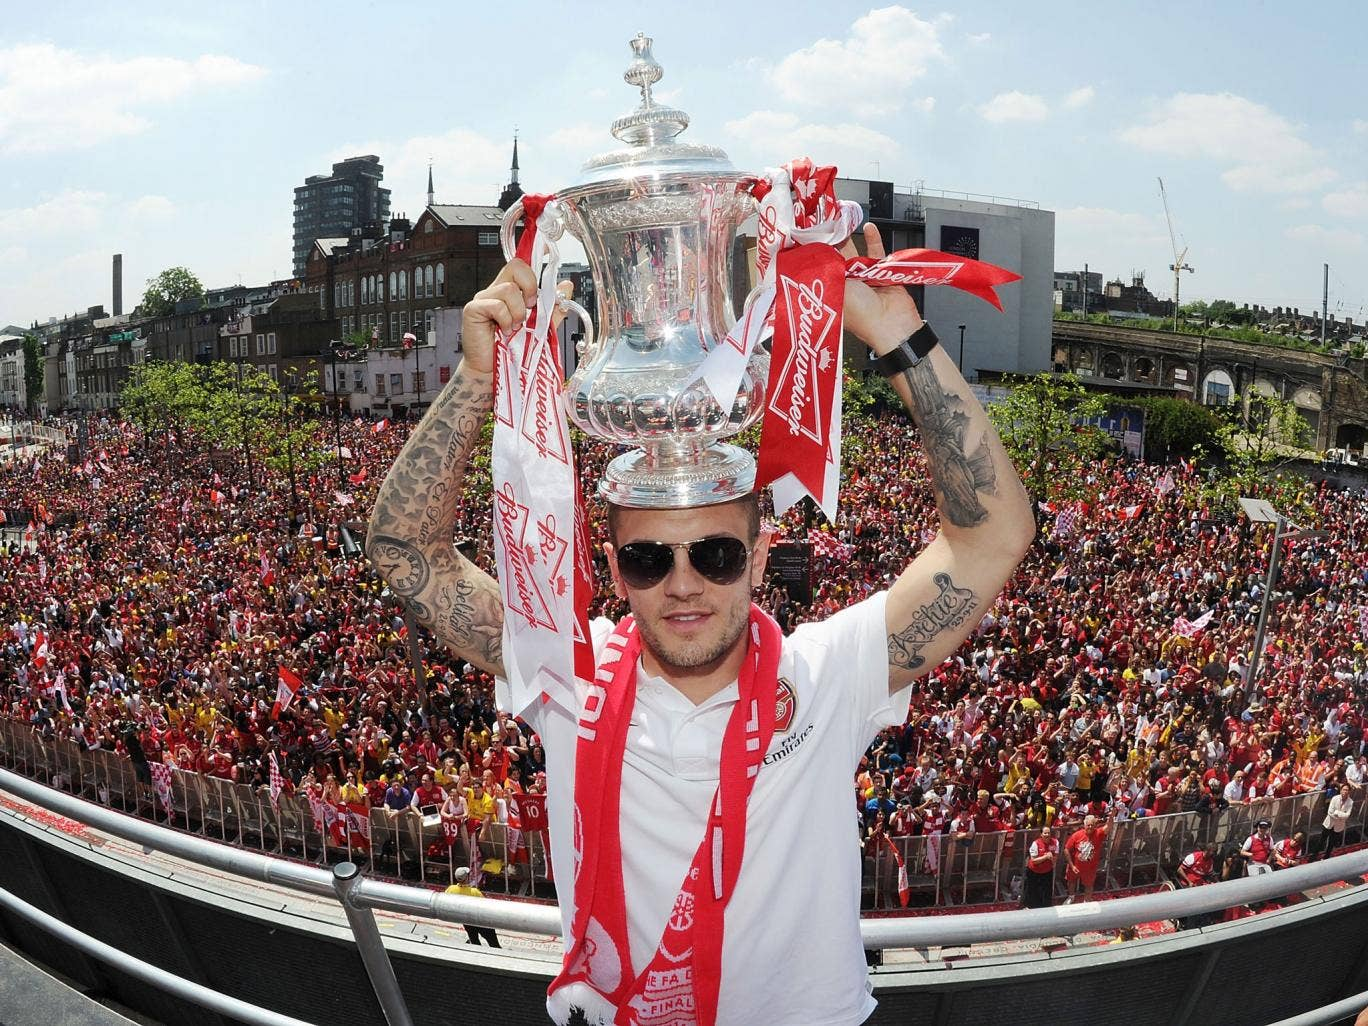 Wilshere poses with the trophy at the Arsenal Victory Parade